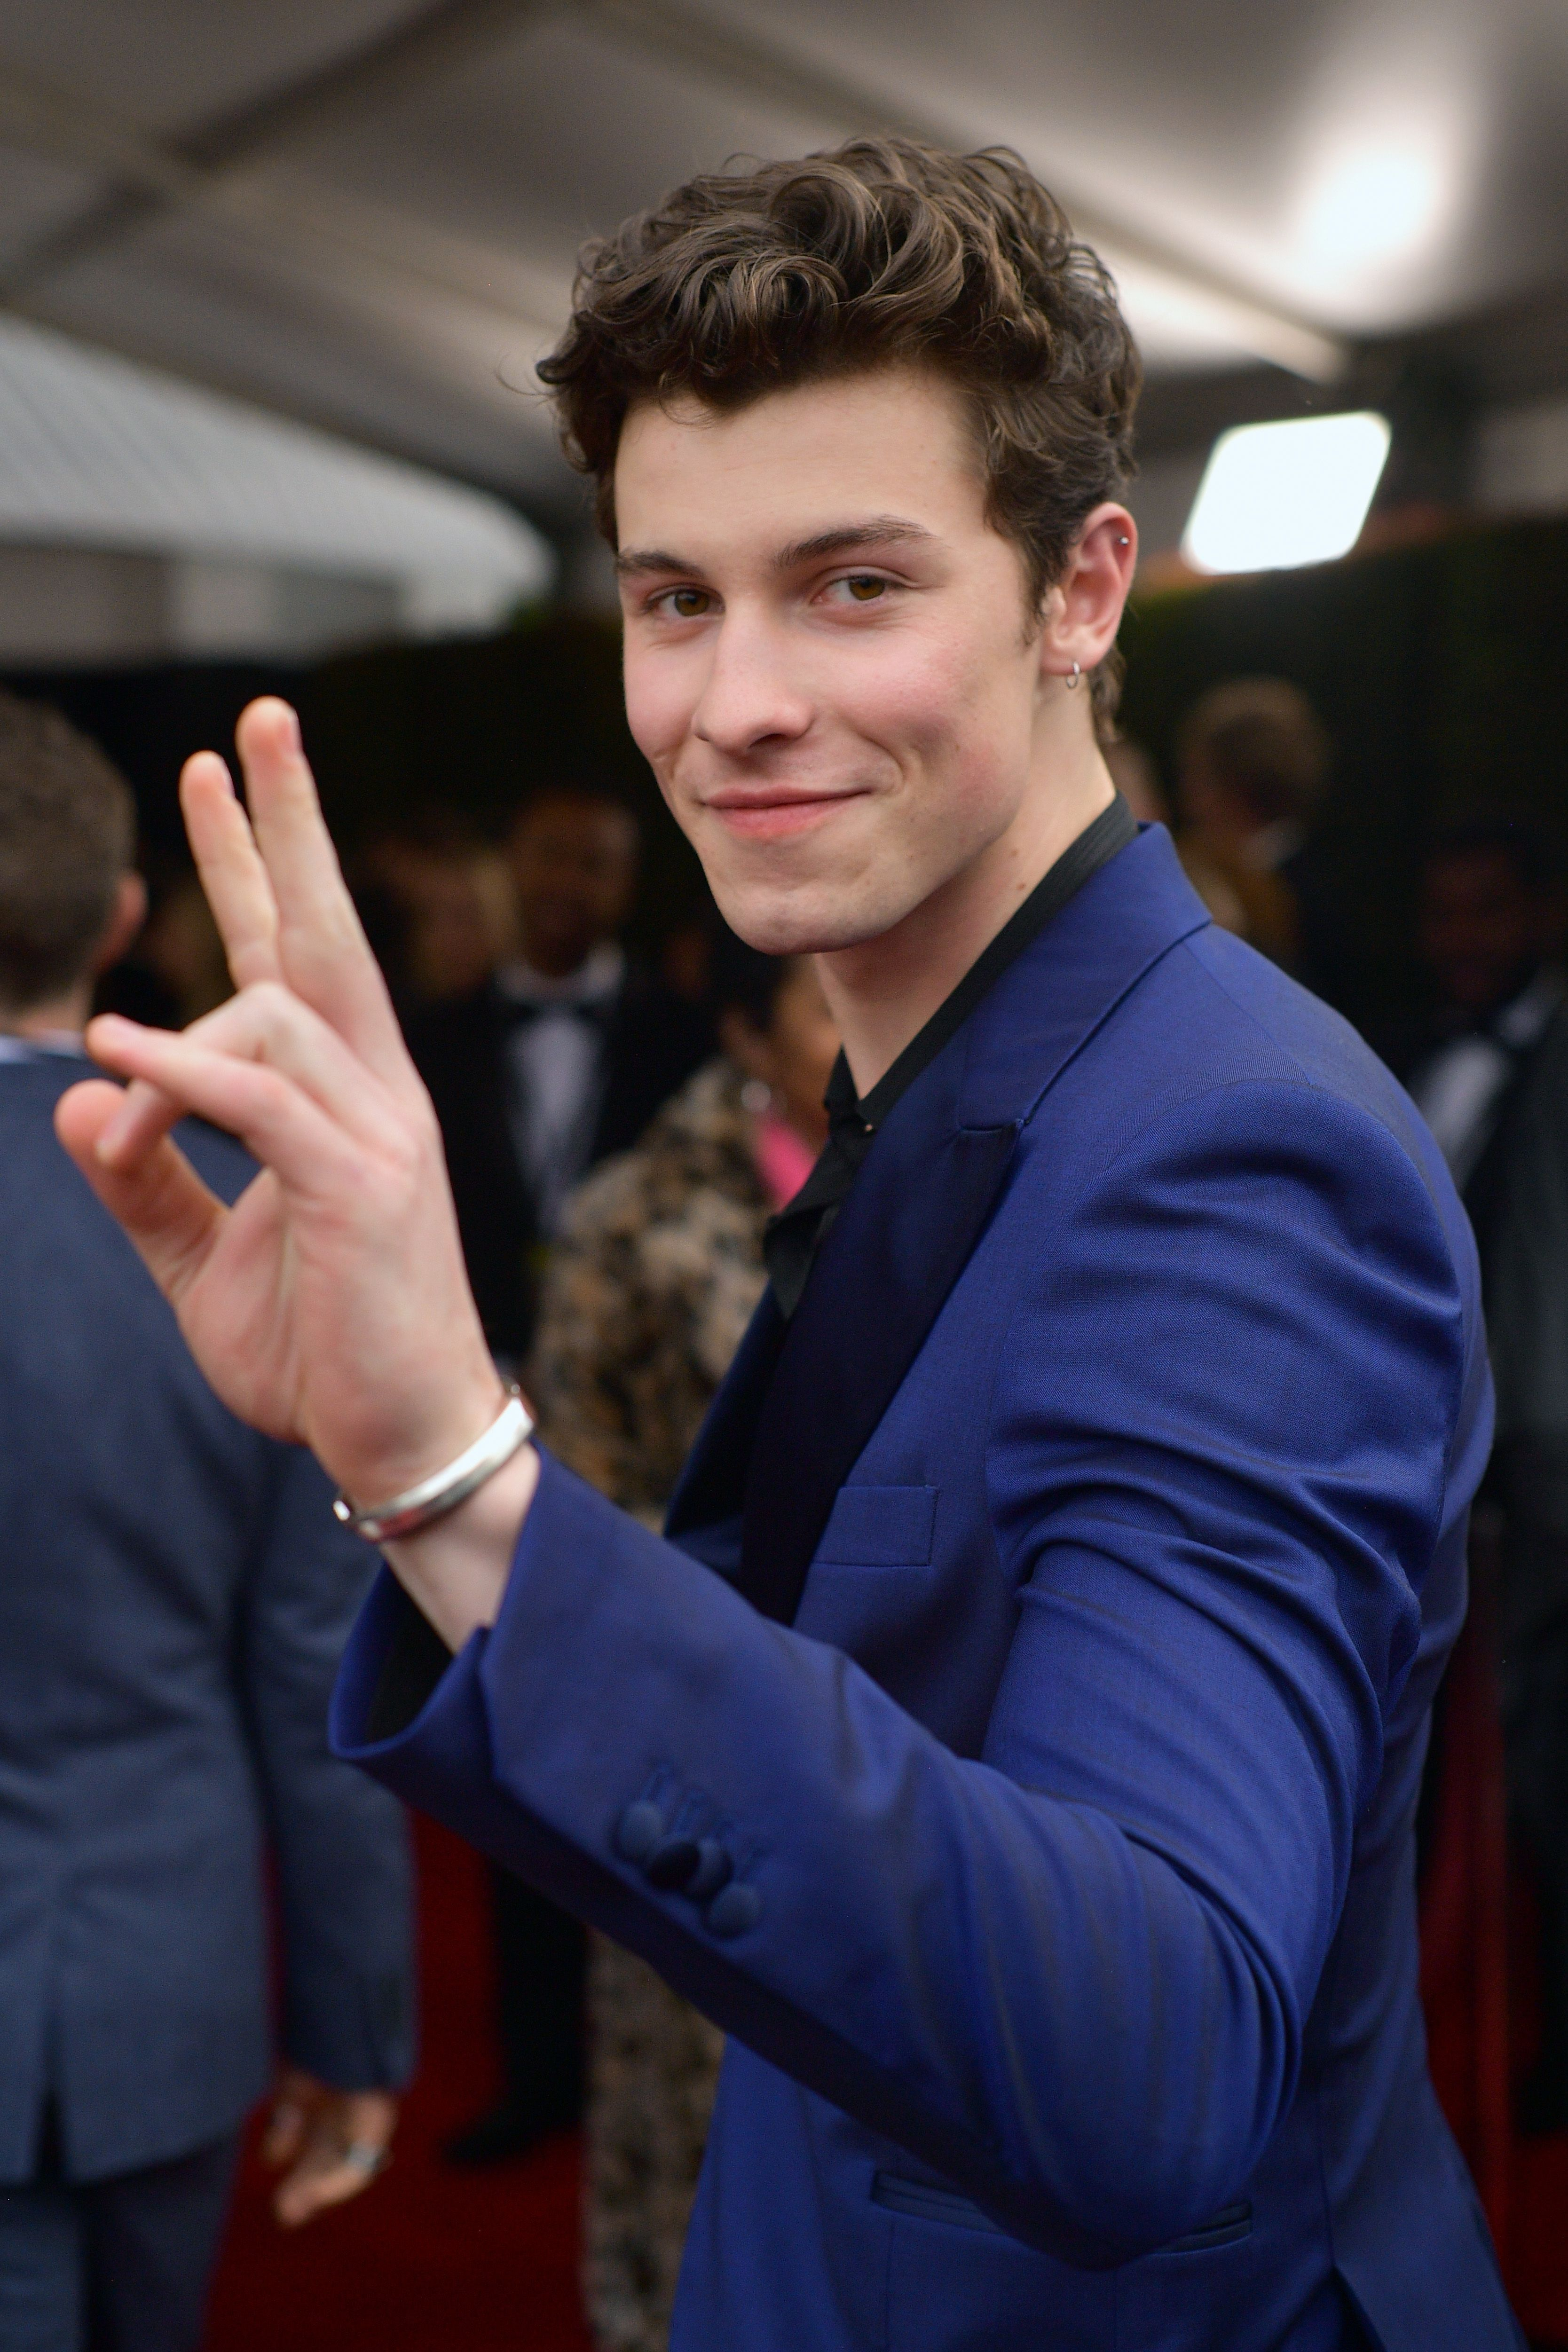 Shawn Mendes Fan Asks for Advice on Telling Parents She's Bisexual